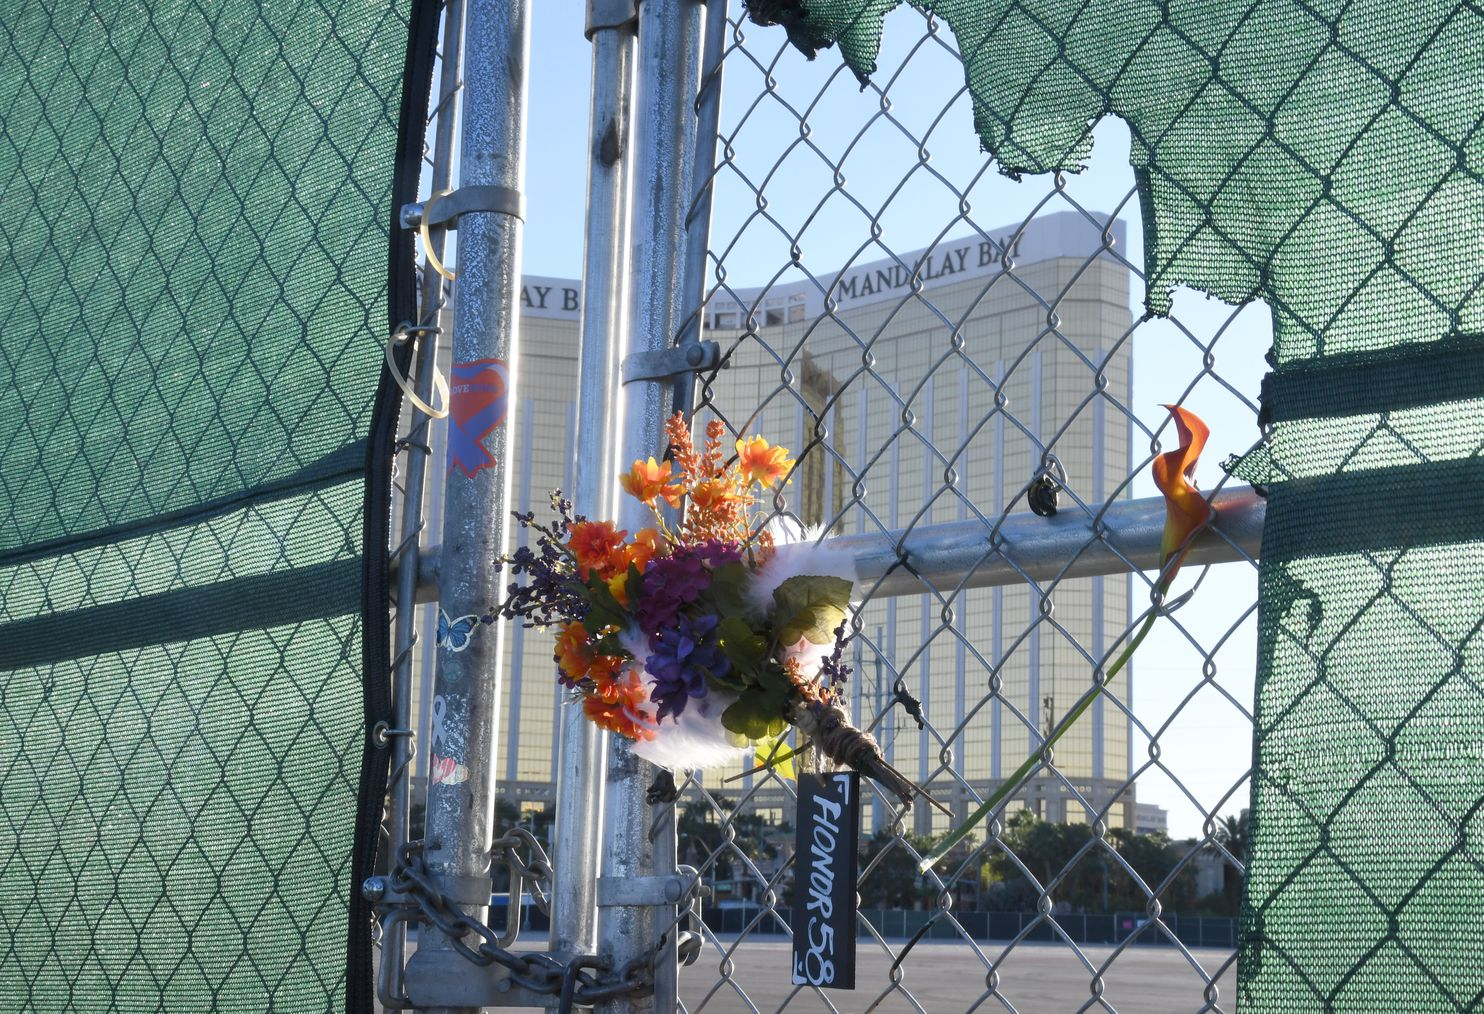 Flowers honoring the Las Vegas shooting victims rest on a fence near the Mandalay Bay Resort and Casino on Monday, a day before the second anniversary of the massacre.